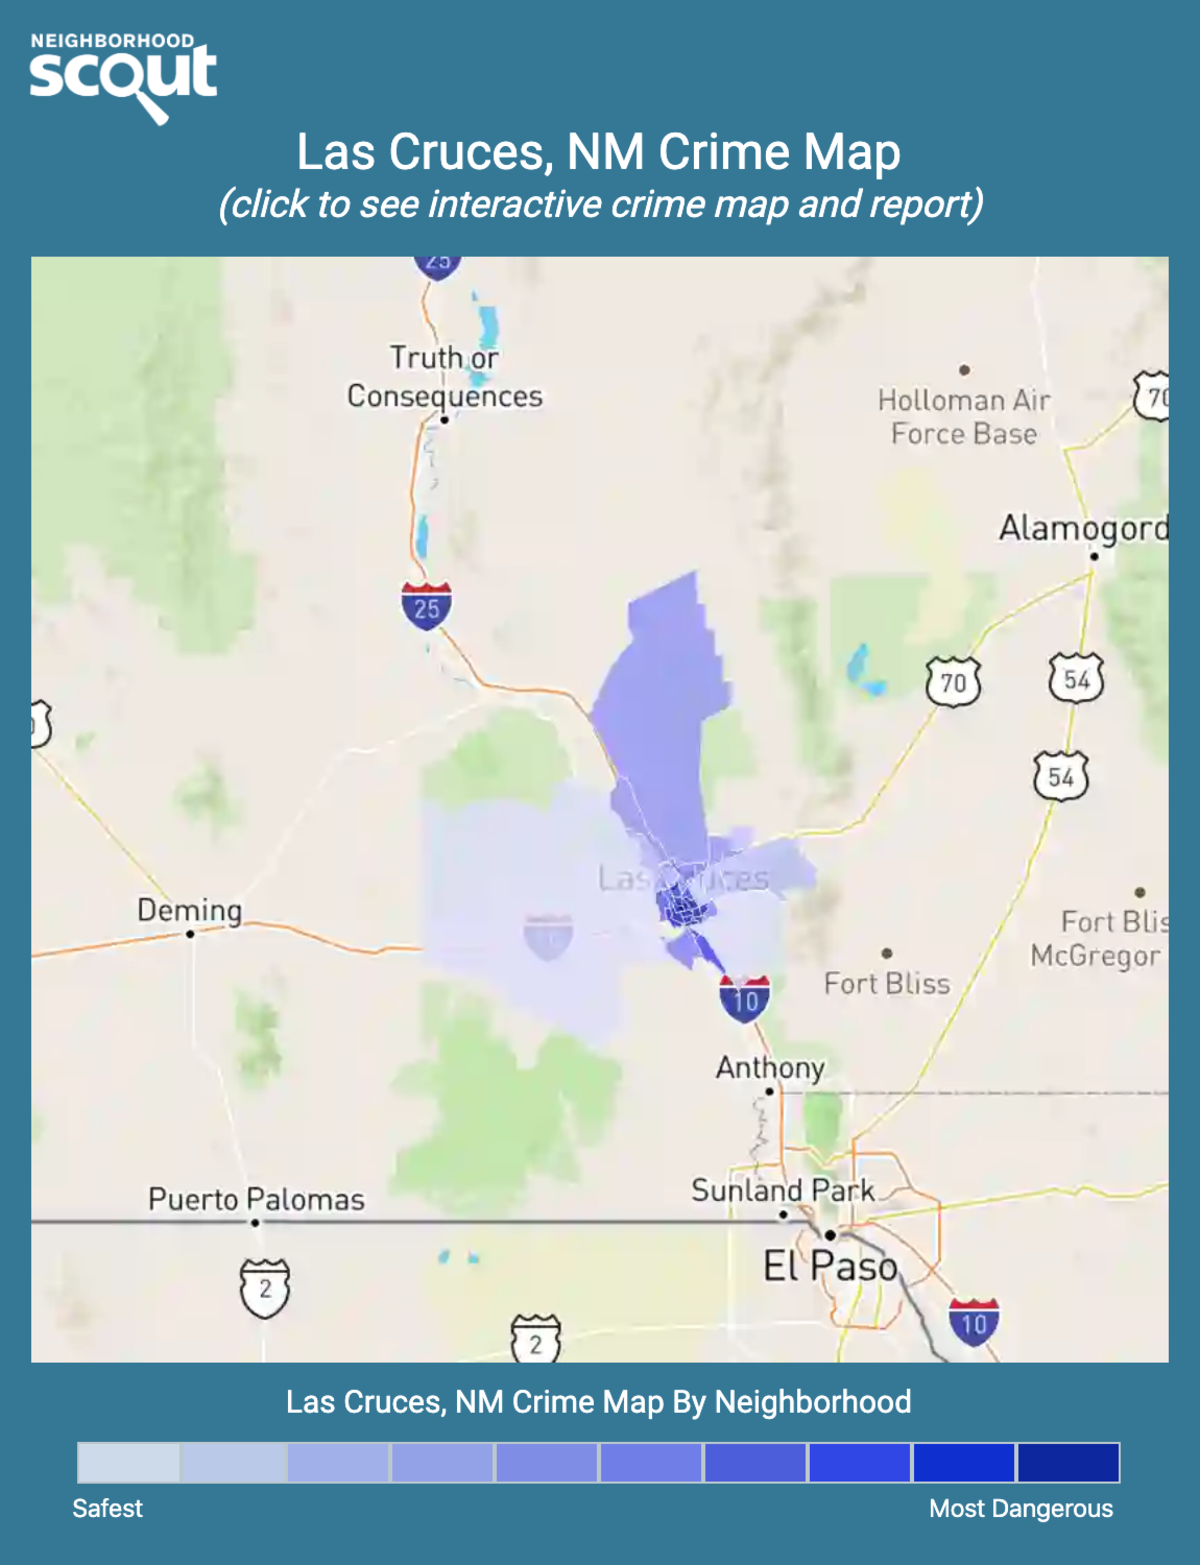 Las Cruces, New Mexico crime map